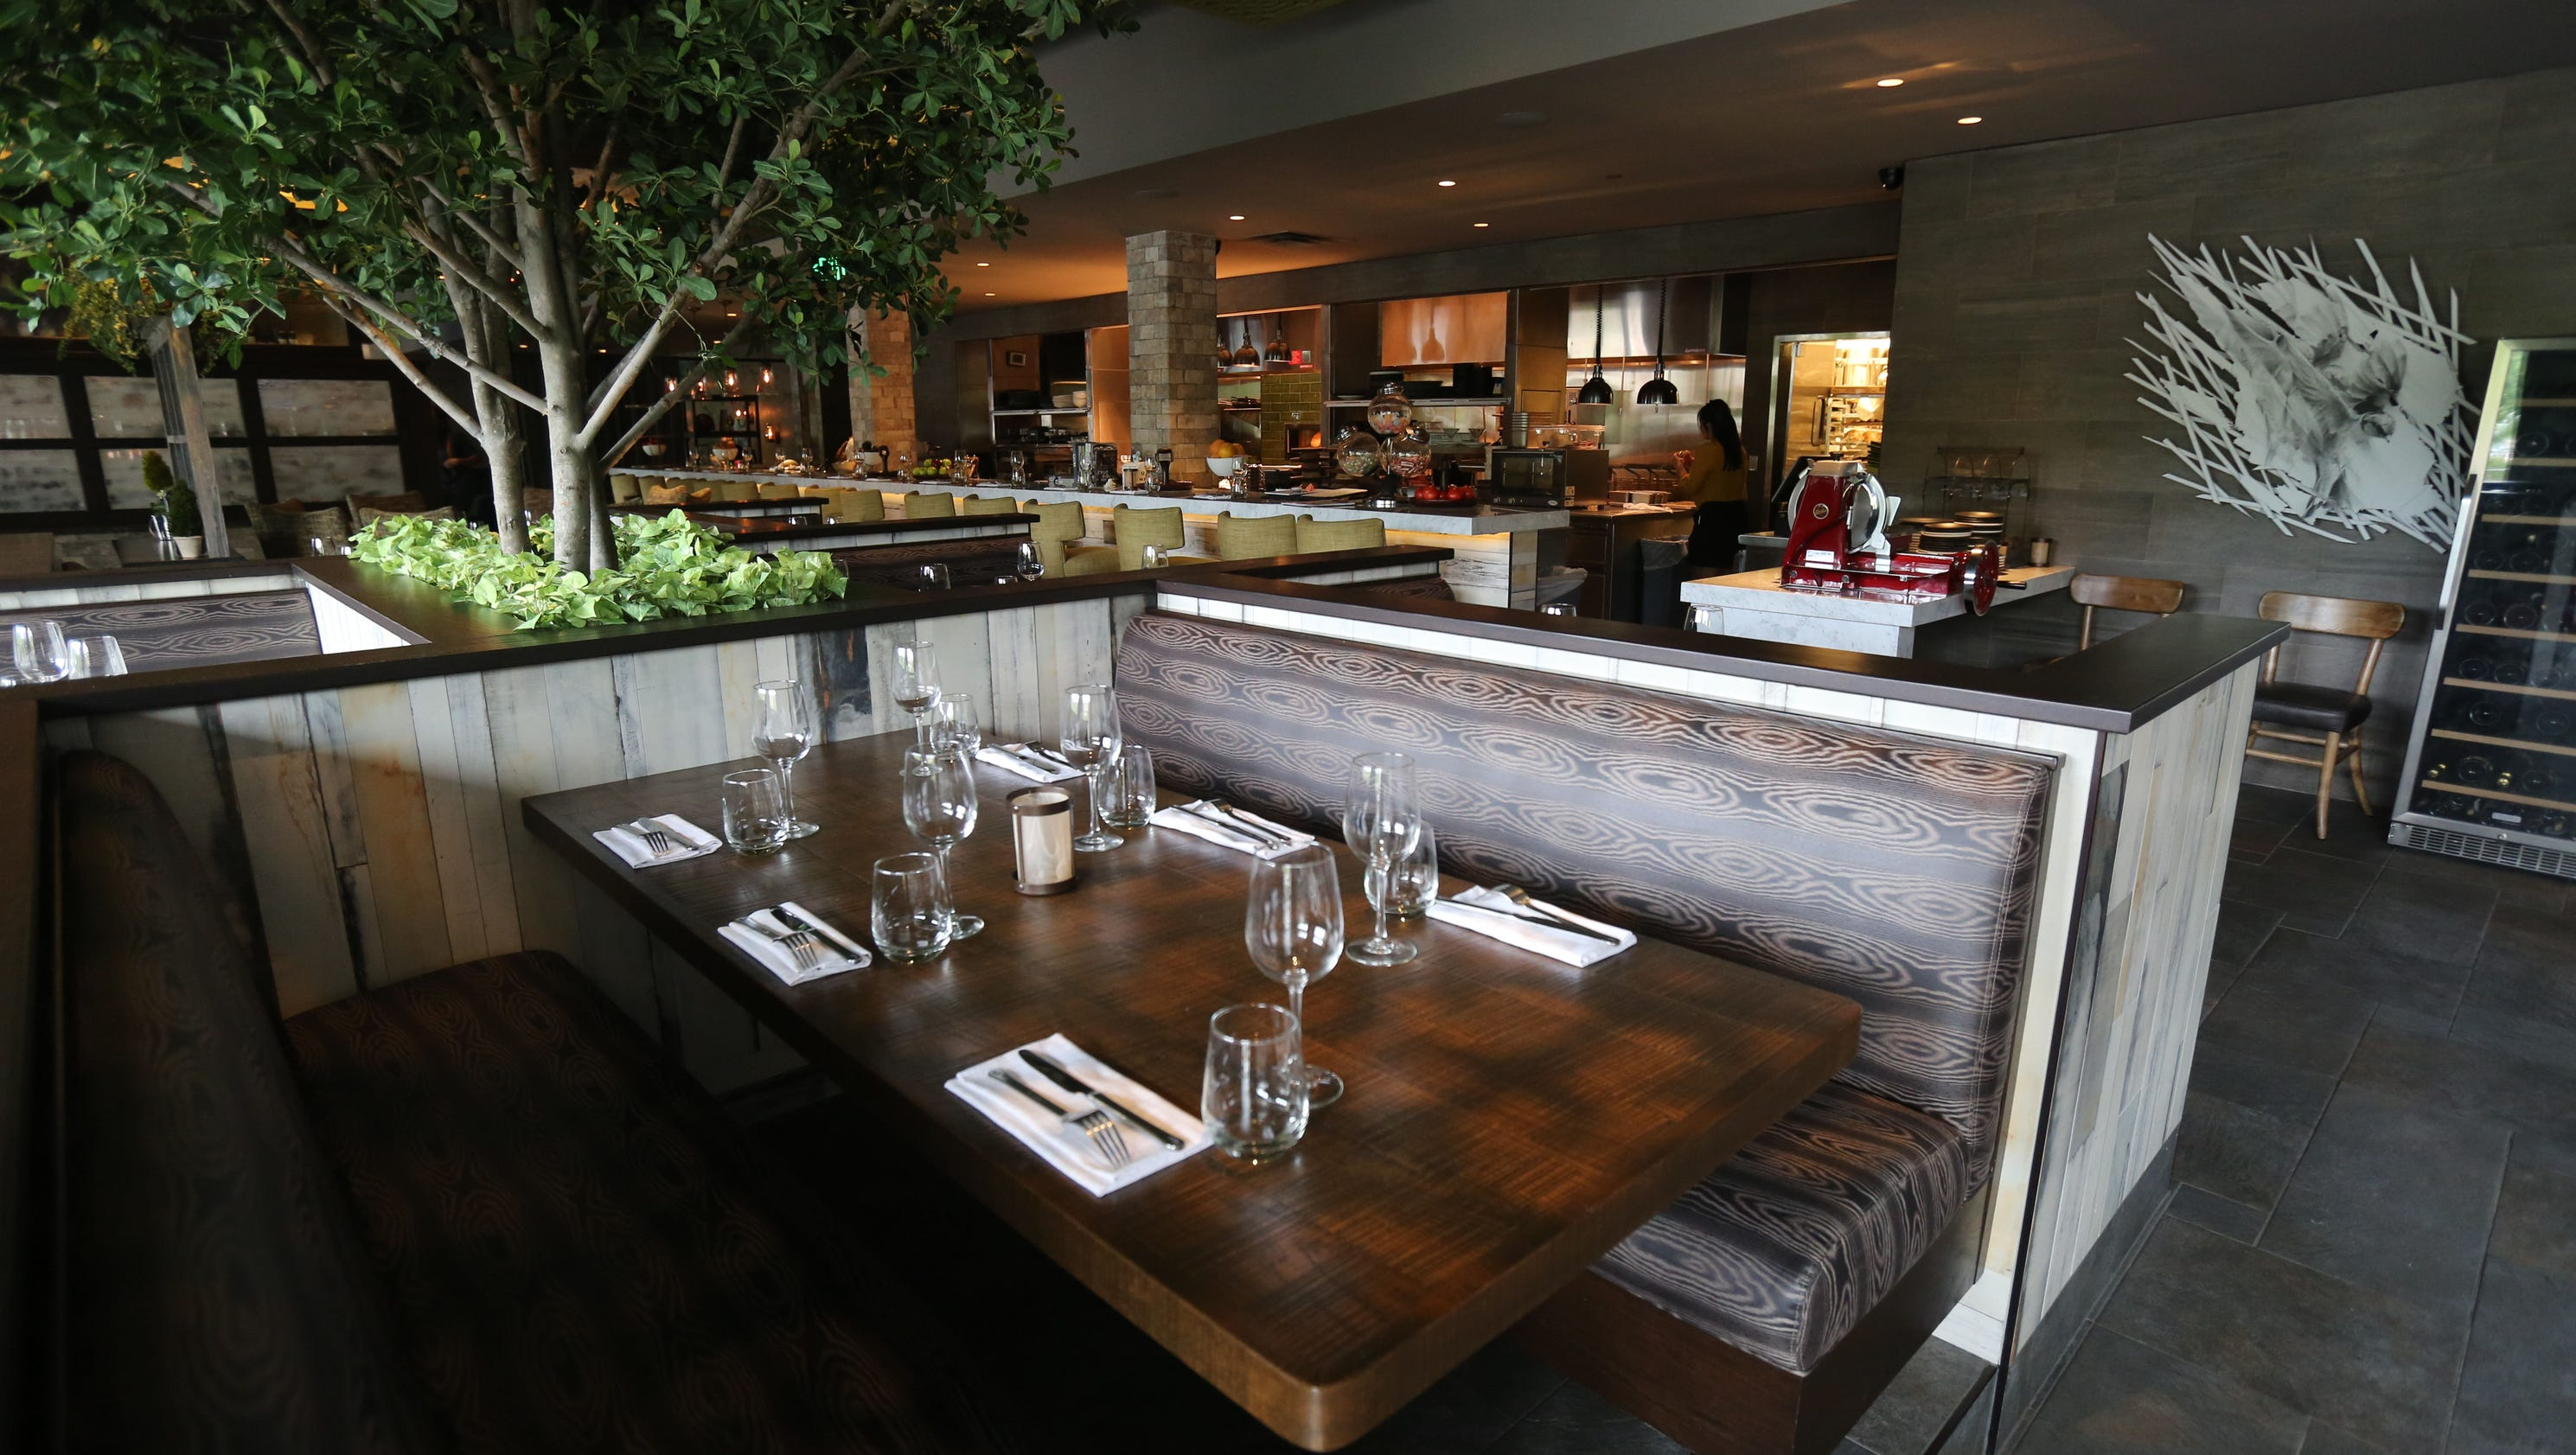 Photos city perch kitchen bar in dobbs ferry and ipic for Food bar kitchen jkl